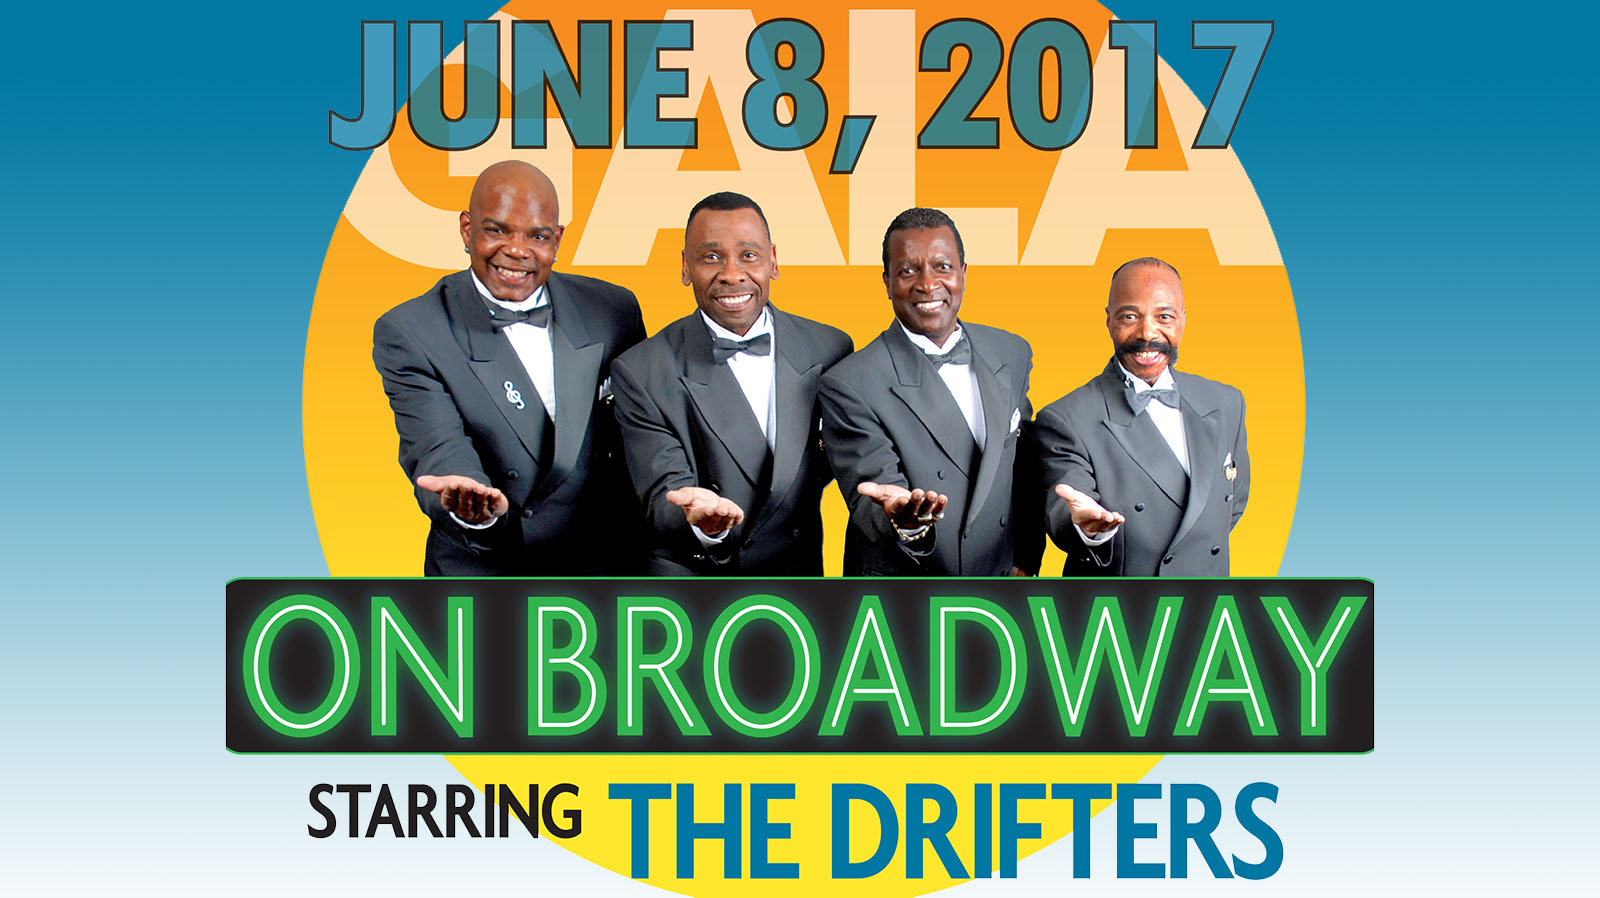 Rock & Roll Hall of Famers The Drifters To Headline Algonquin Arts Theatre Gala